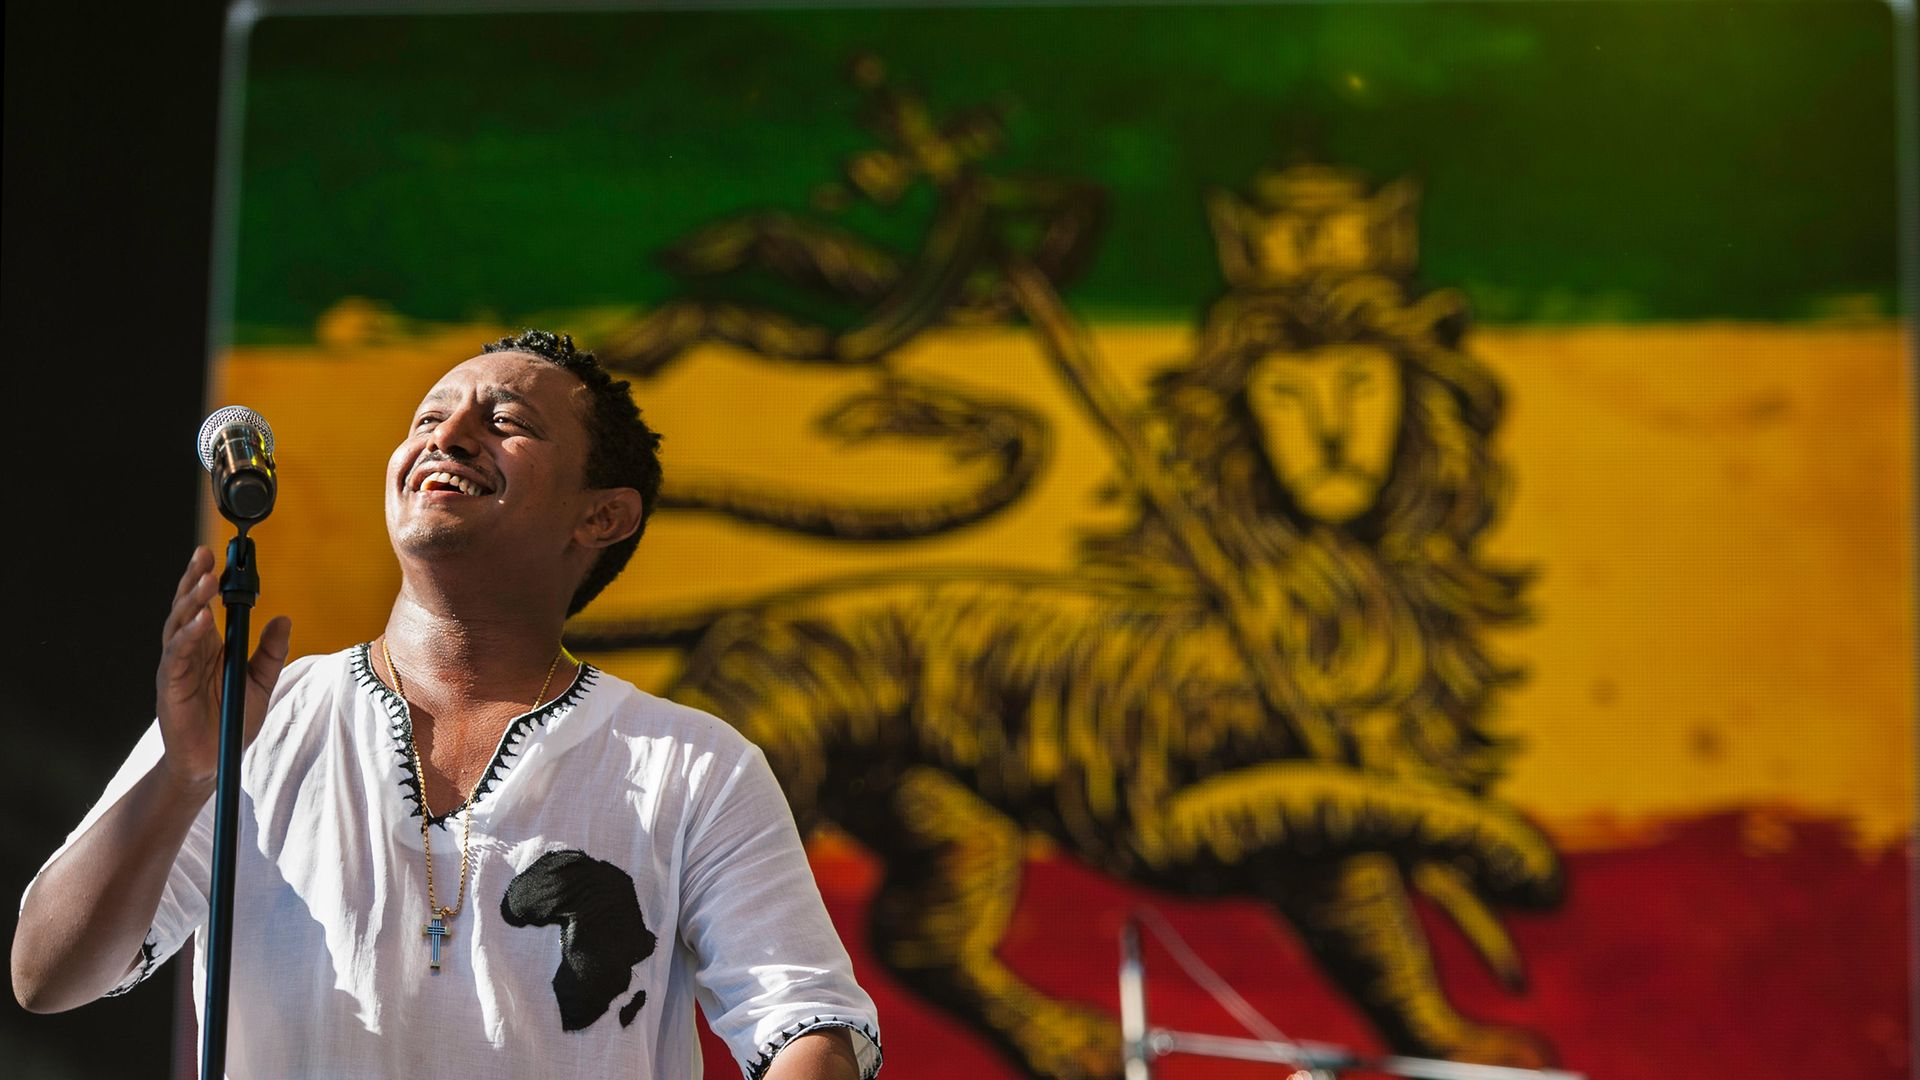 Teddy Afro performs on stage at a concert in Central Park, New York, in 2014 - Credit: Getty Images